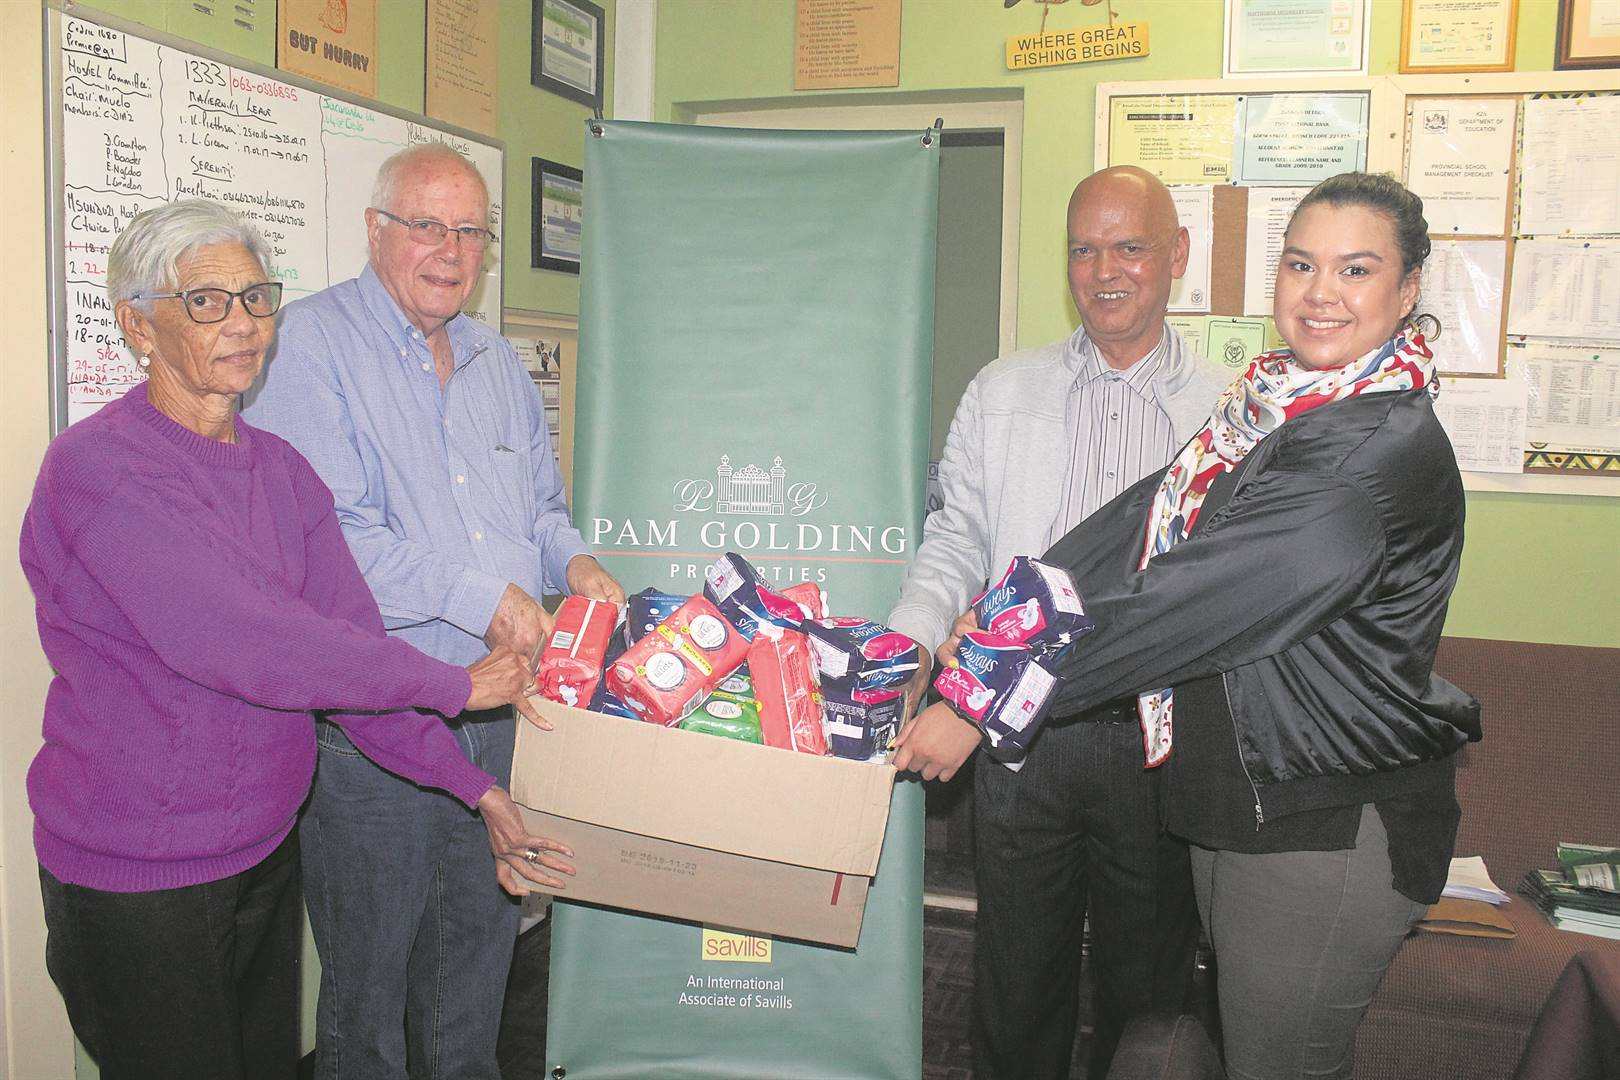 With some of the donations is (front, from left) Adrienne­ Stafford, Div du Toit, Haythorne Principal Cedric Diaz, and Rene Norman. PHOTOS: NTANDOYENKOSI DLAMINI